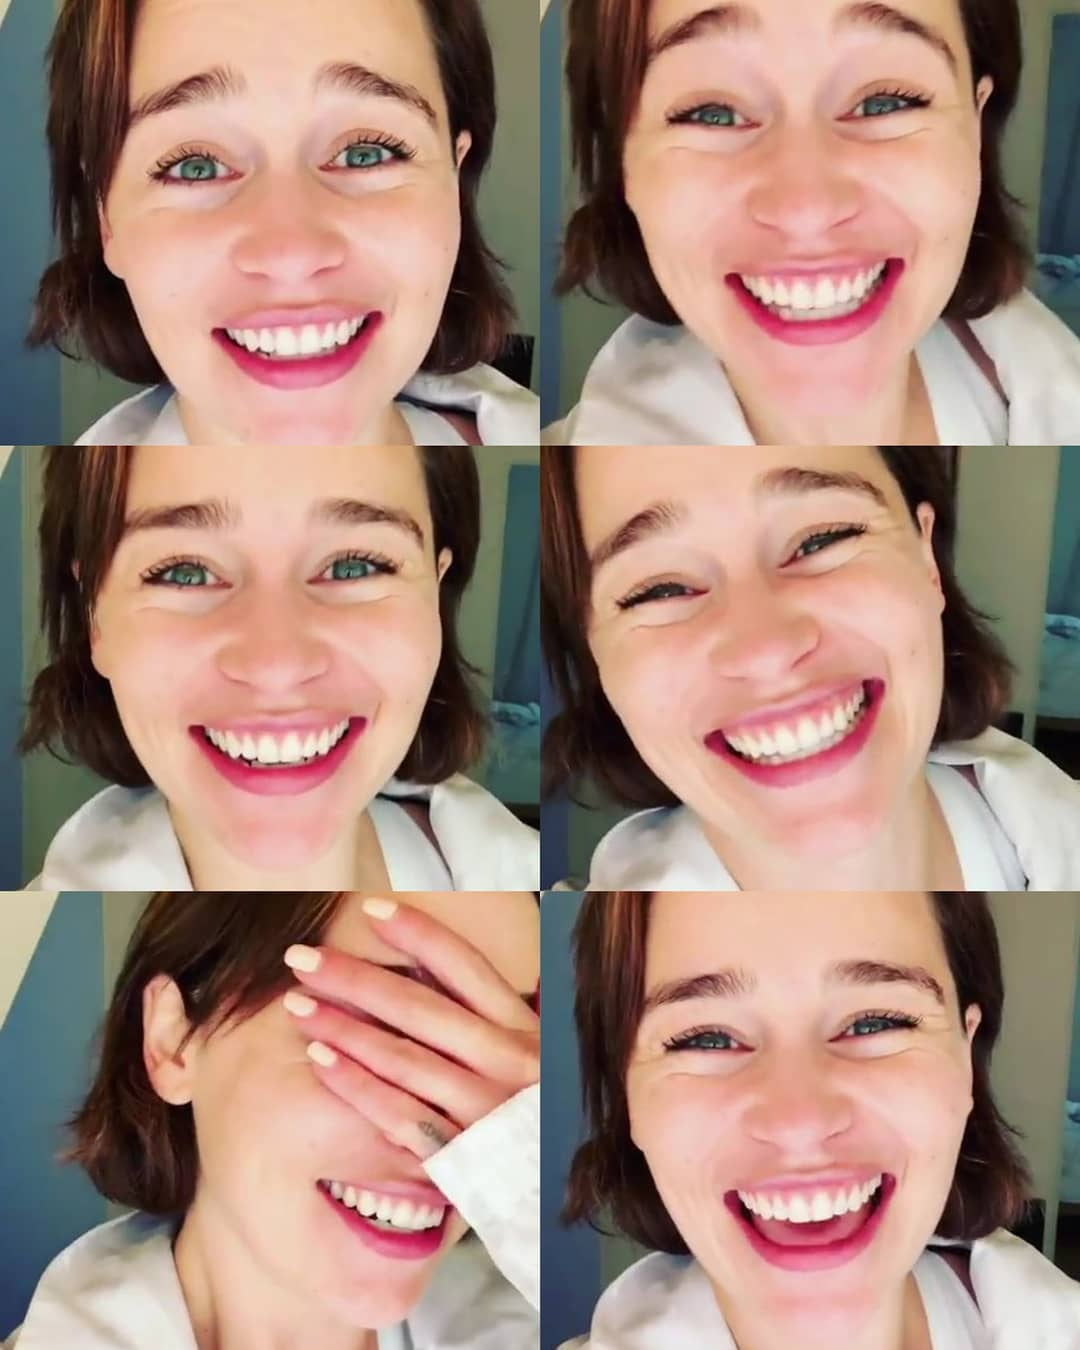 Hollywood Actress : I don't think Emilia Clarke needs makeup because she's a wonderful, fantastic queen already truly gorgeous full of magnificent brilliant smarts eyes of beauty gorgeous smile. Beautiful smile! Love!